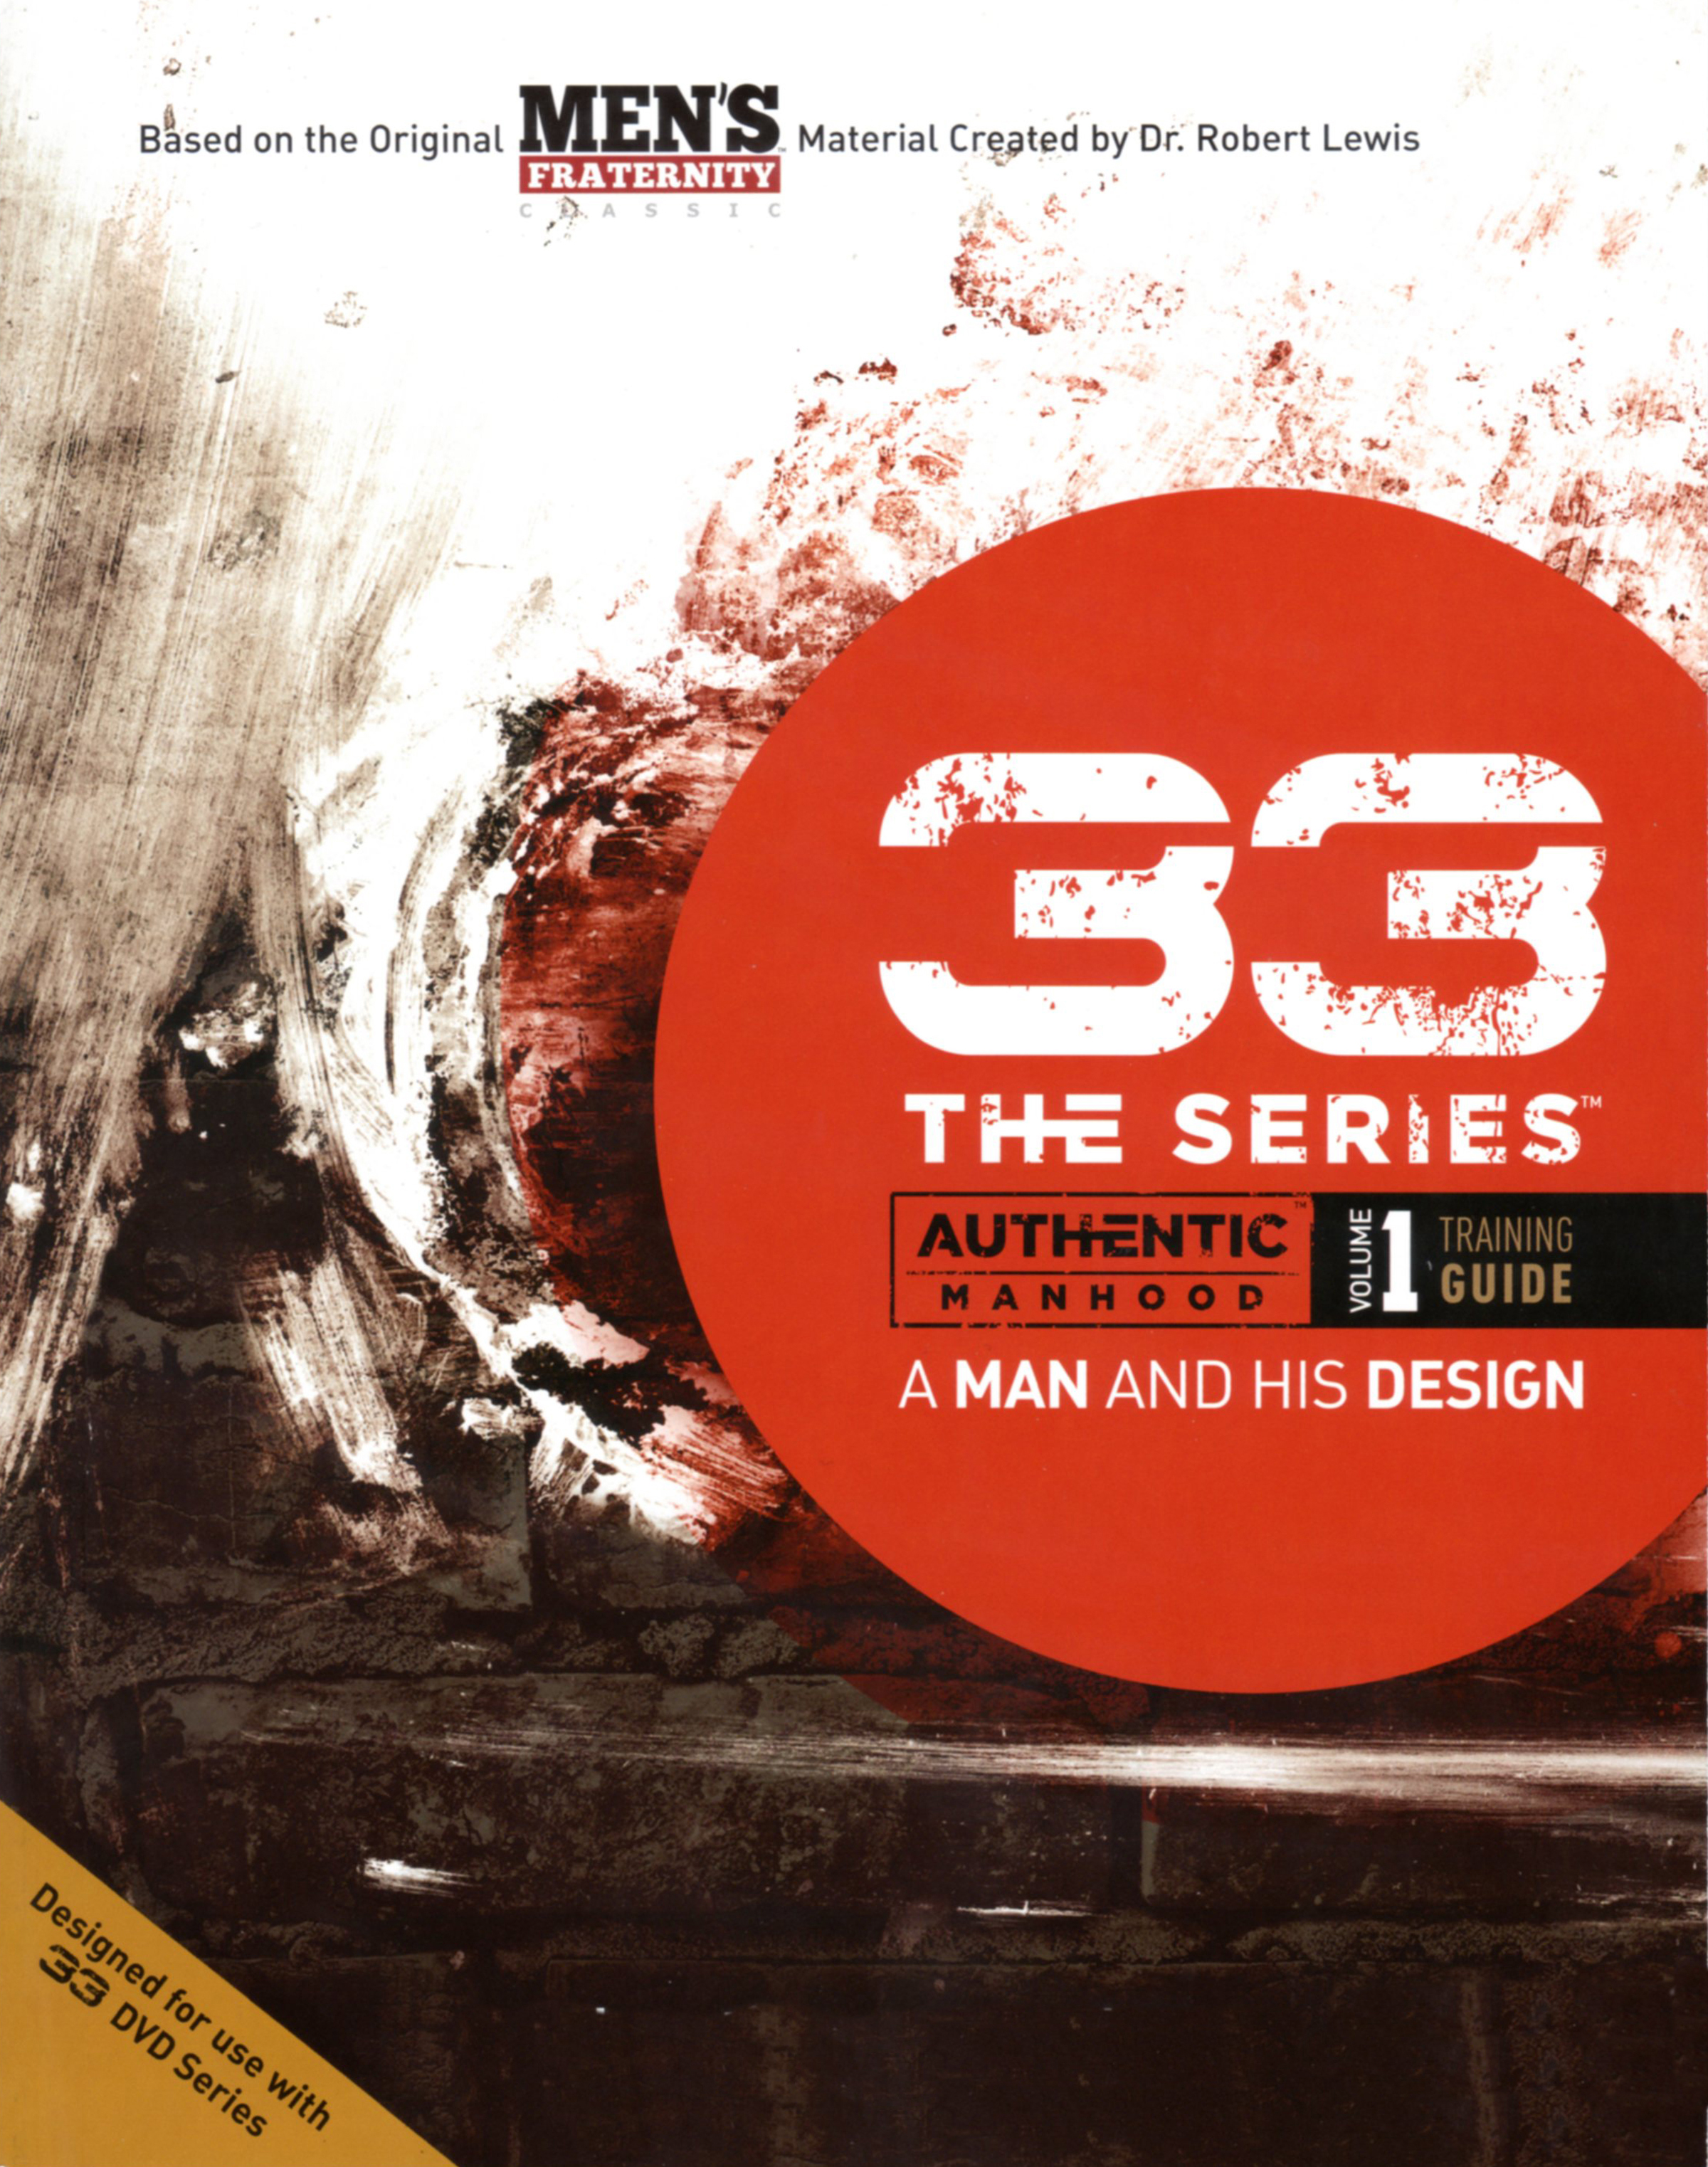 A Man and His Design - Discover God's design for men with a clear definition and compelling vision of authentic manhood.This volume helps men navigate through some manhood realities that have created cultural confusion. Men will discover the four faces of manhood and learn how to transition well through the specific seasons of life.